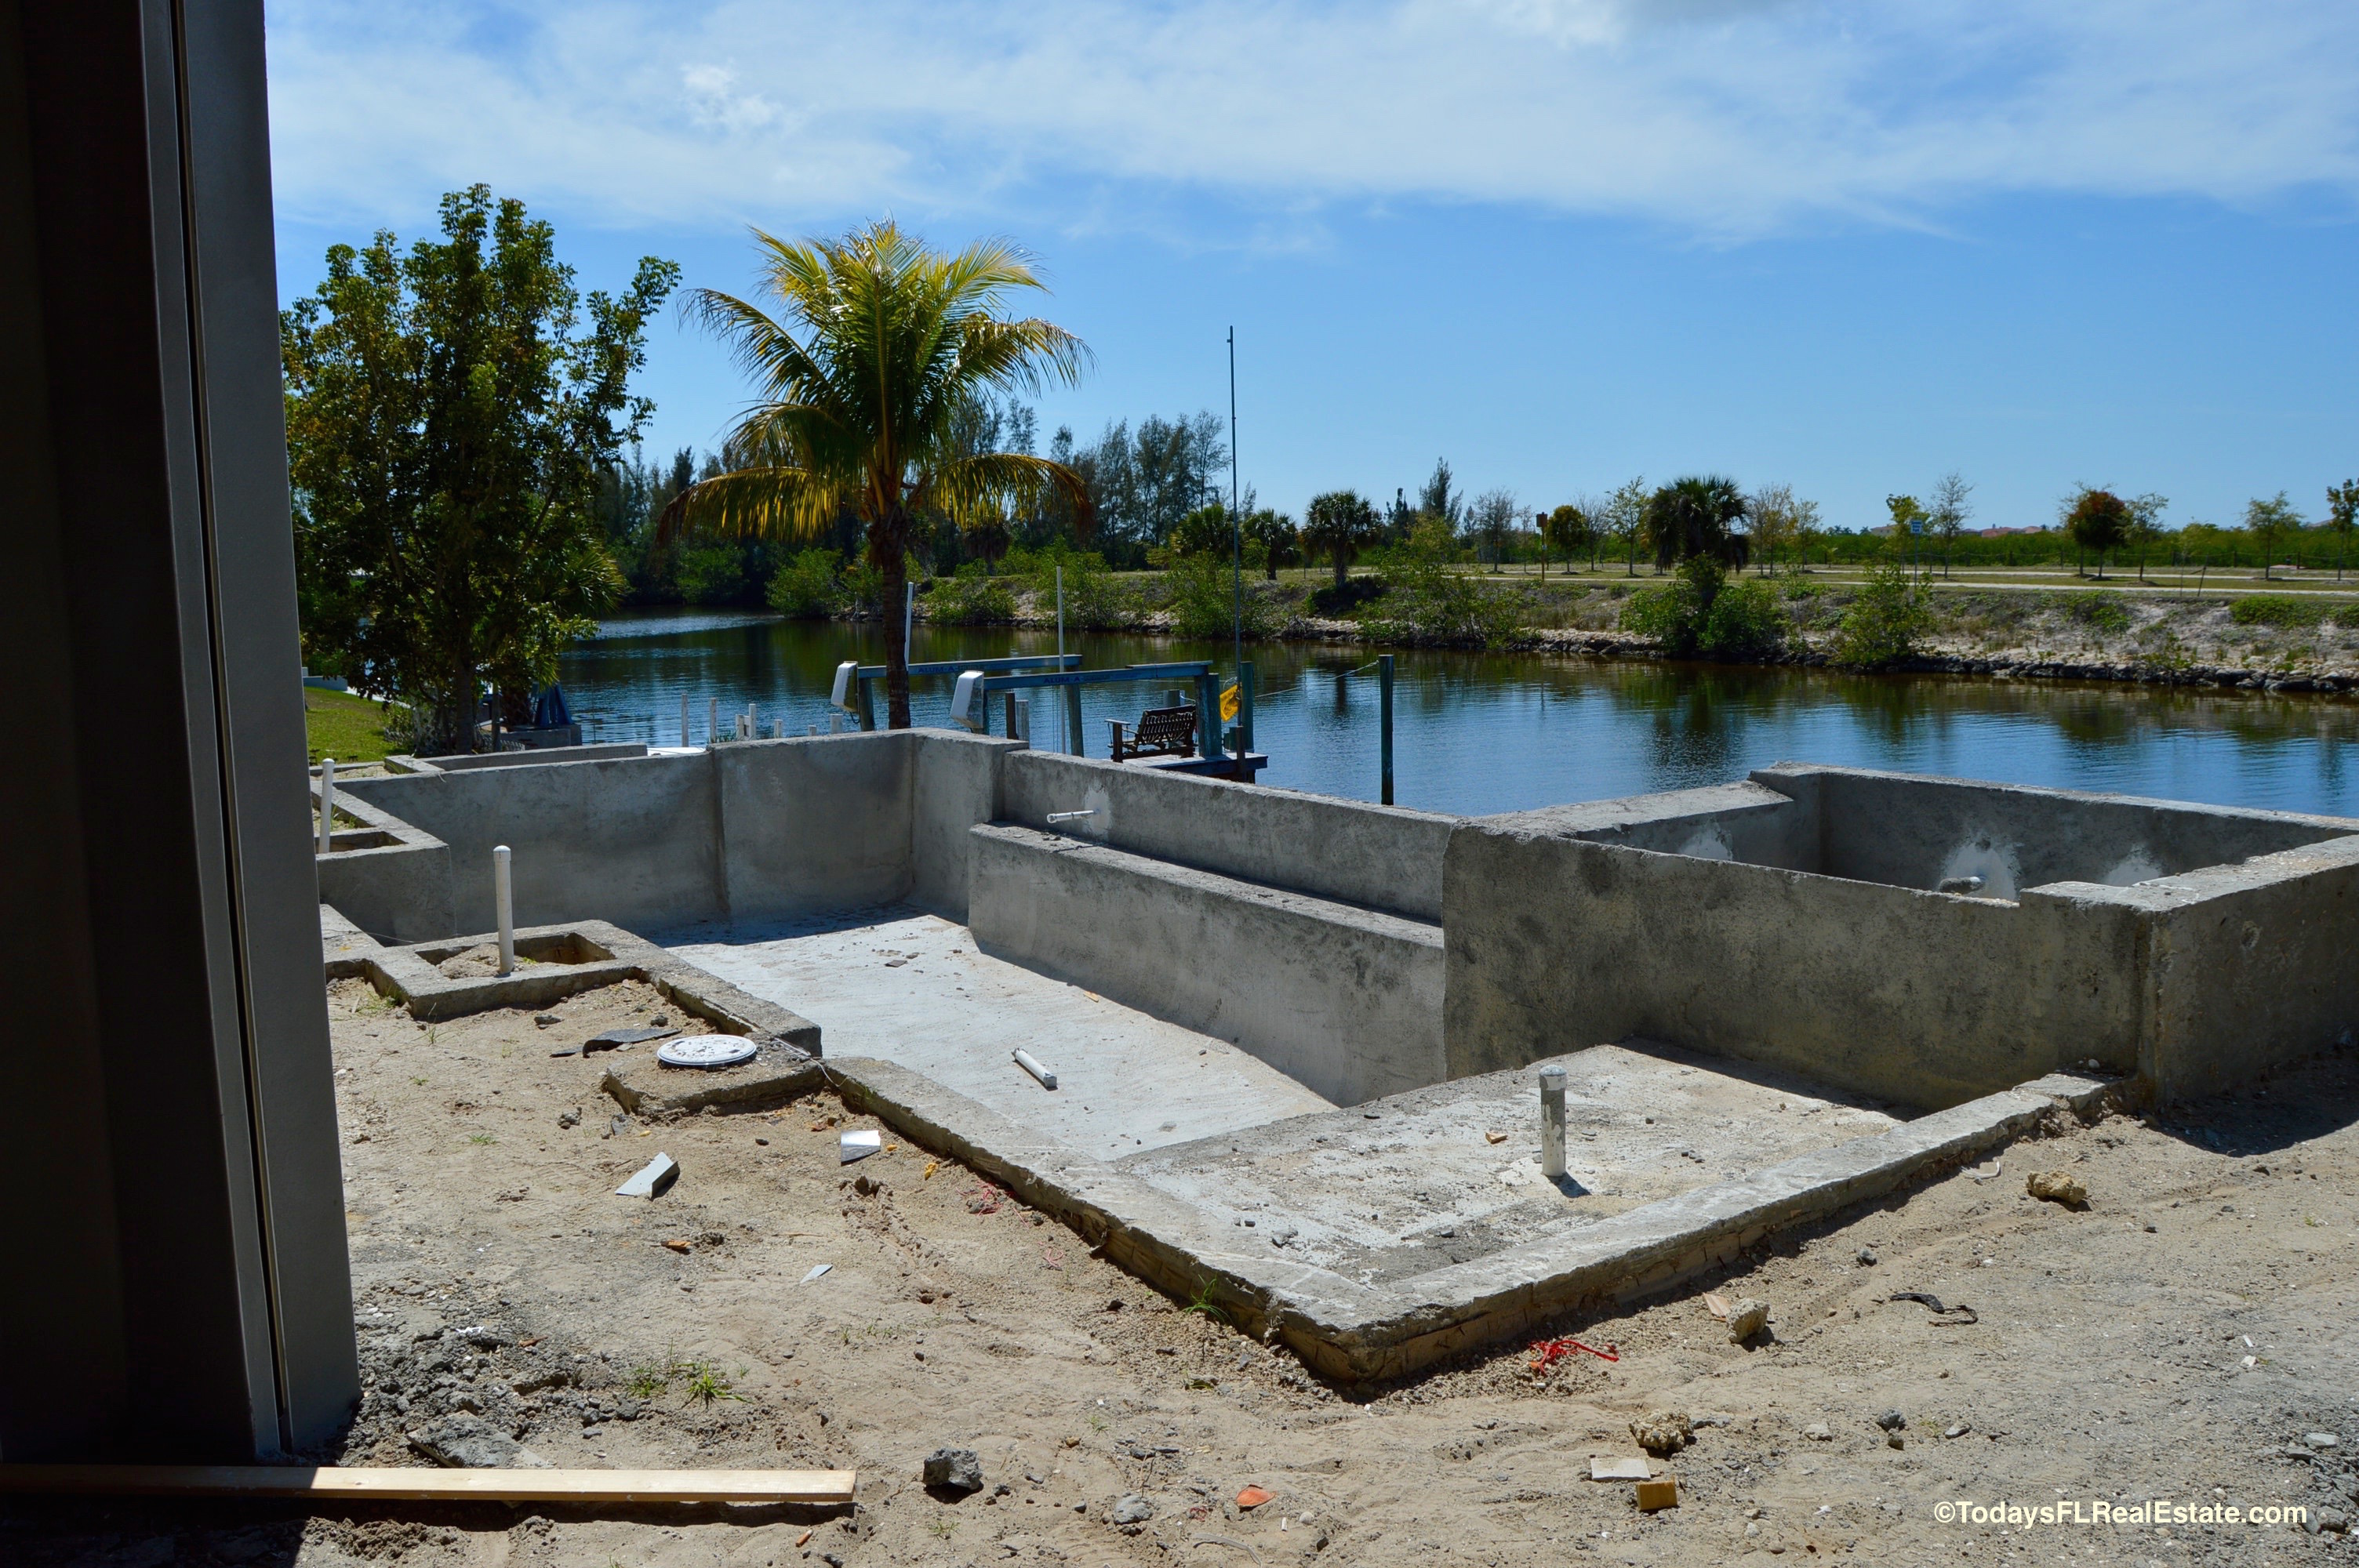 Swimming pool homes for sale Cape Coral, Cape Coral Swimming Pools